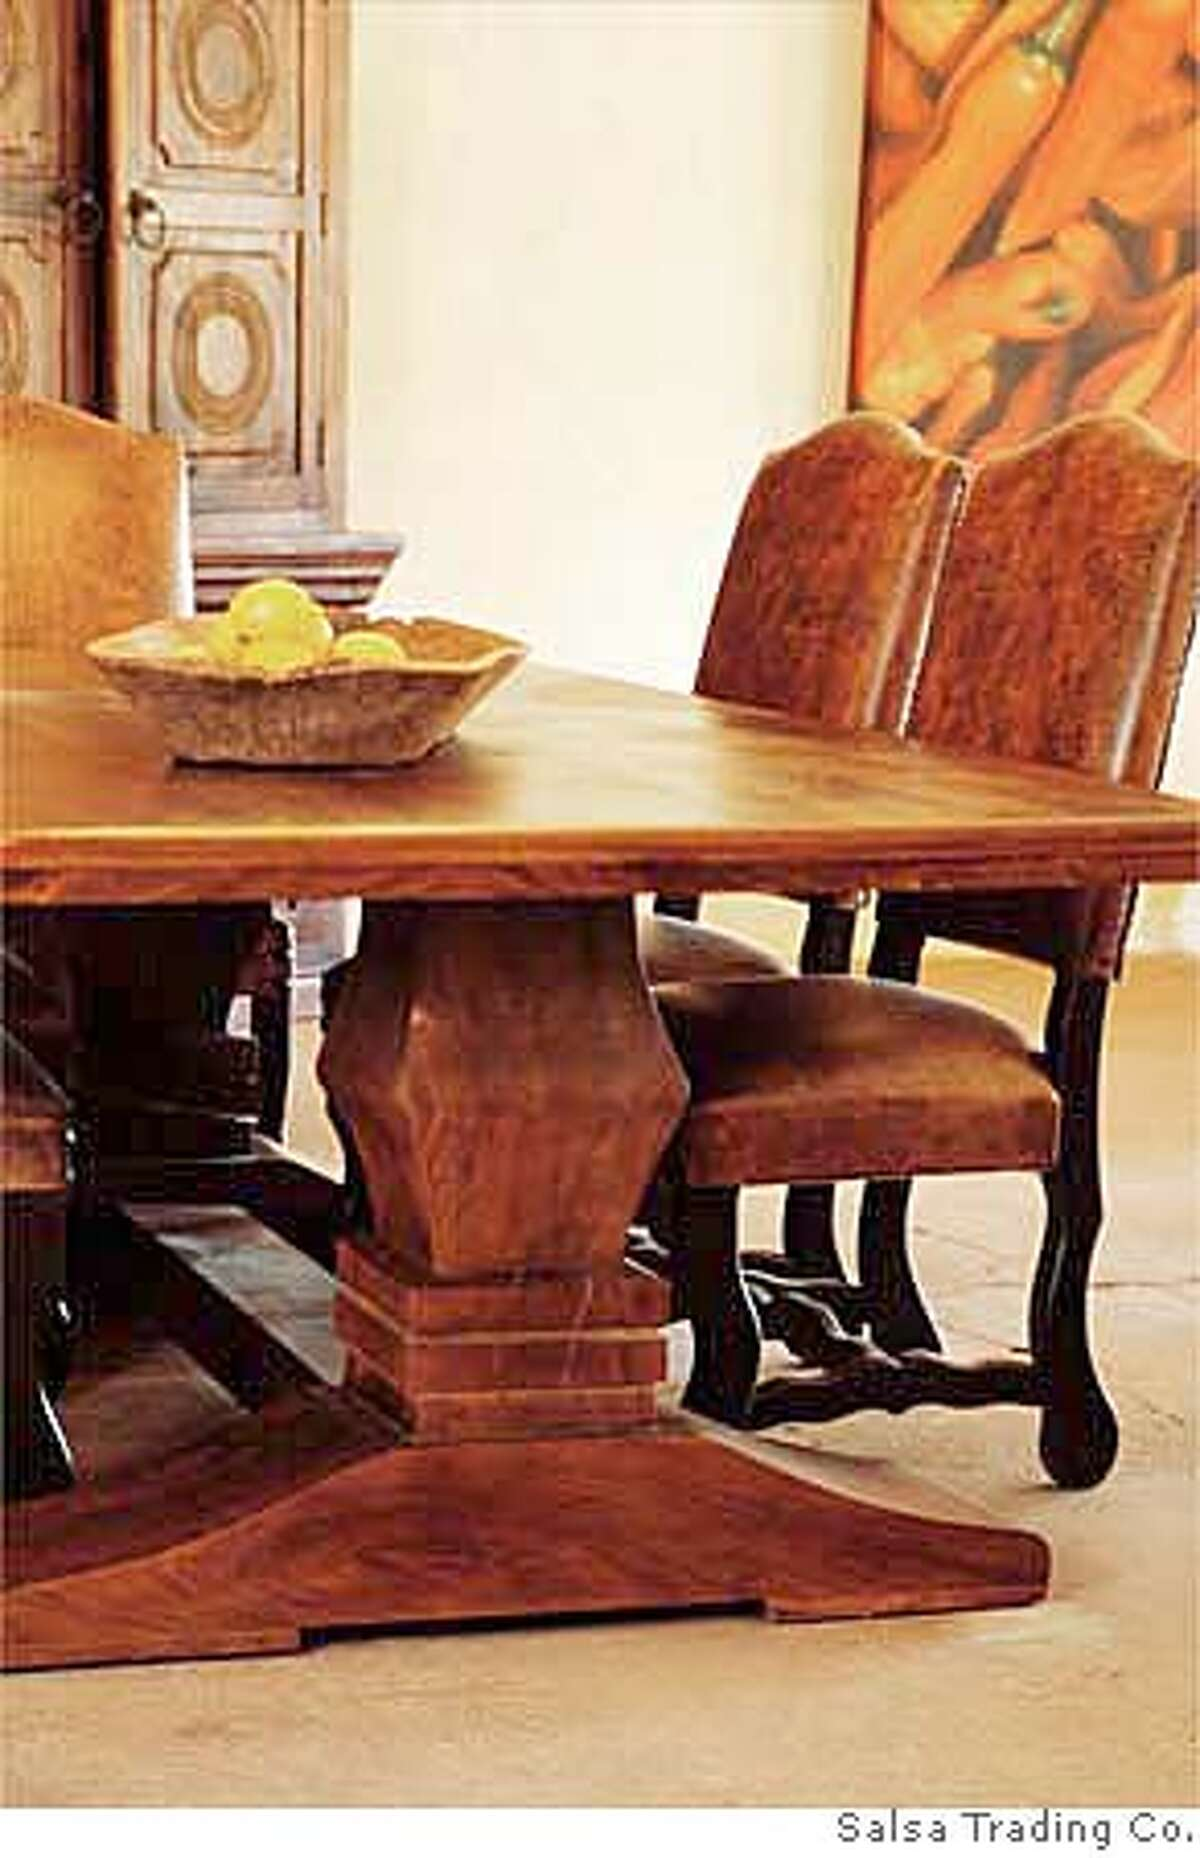 ###Live Caption:Chatsworth Table from Salsa Trading Co., Sonoma###Caption History:Chatsworth Table from Salsa Trading Co., Sonoma###Notes:###Special Instructions: